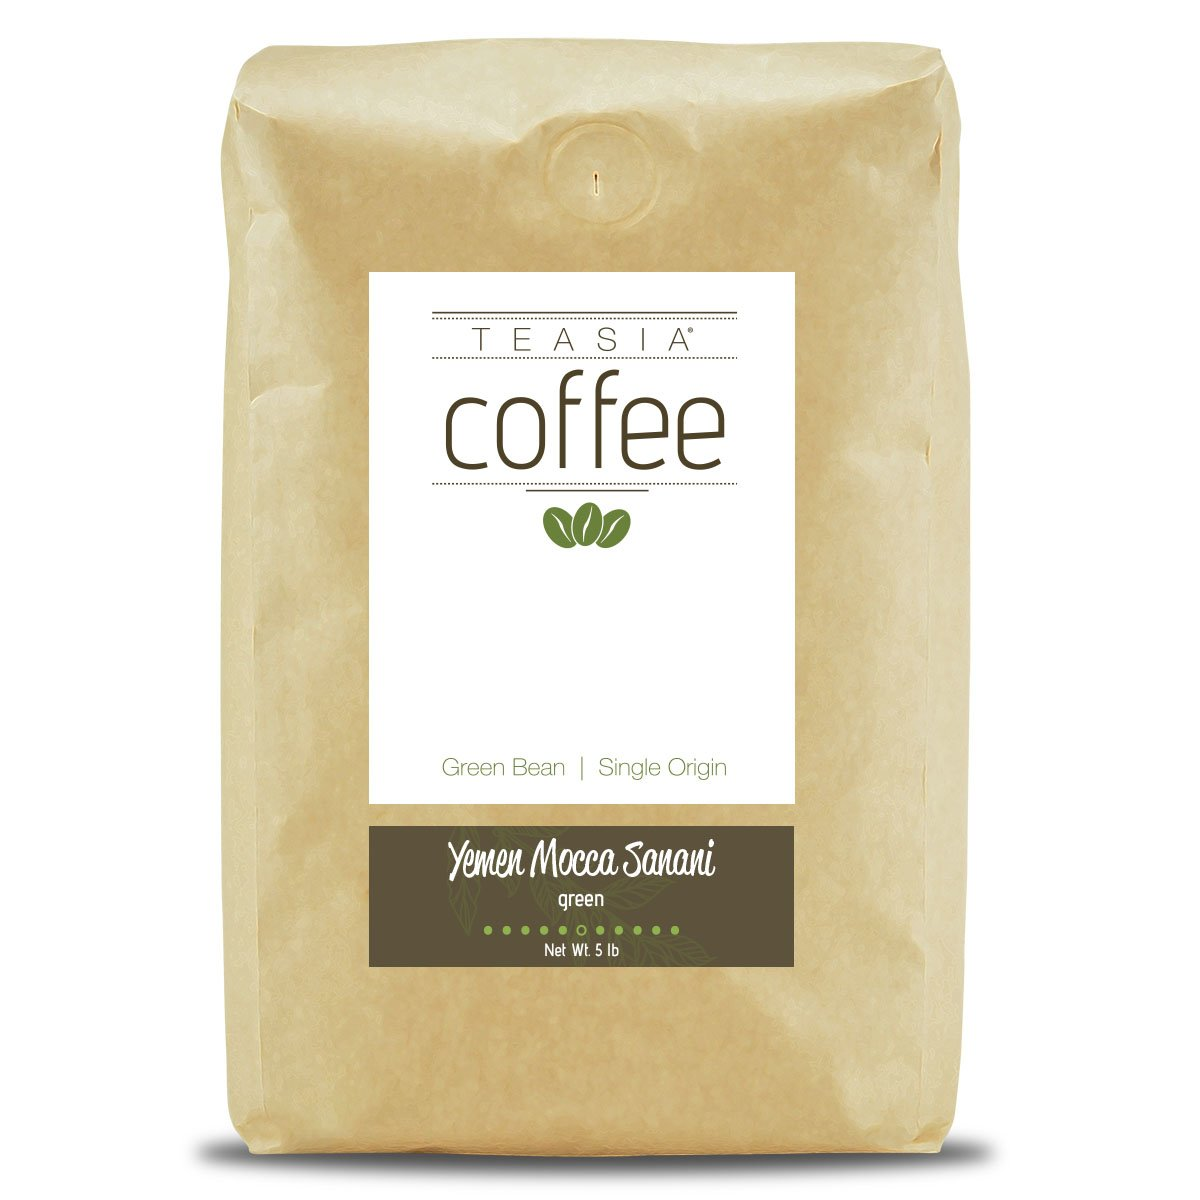 Teasia Coffee, Yemen Mocca Sanani, Single Origin, Green Unroasted Whole Coffee Beans, 5-Pound Bag by Teasia